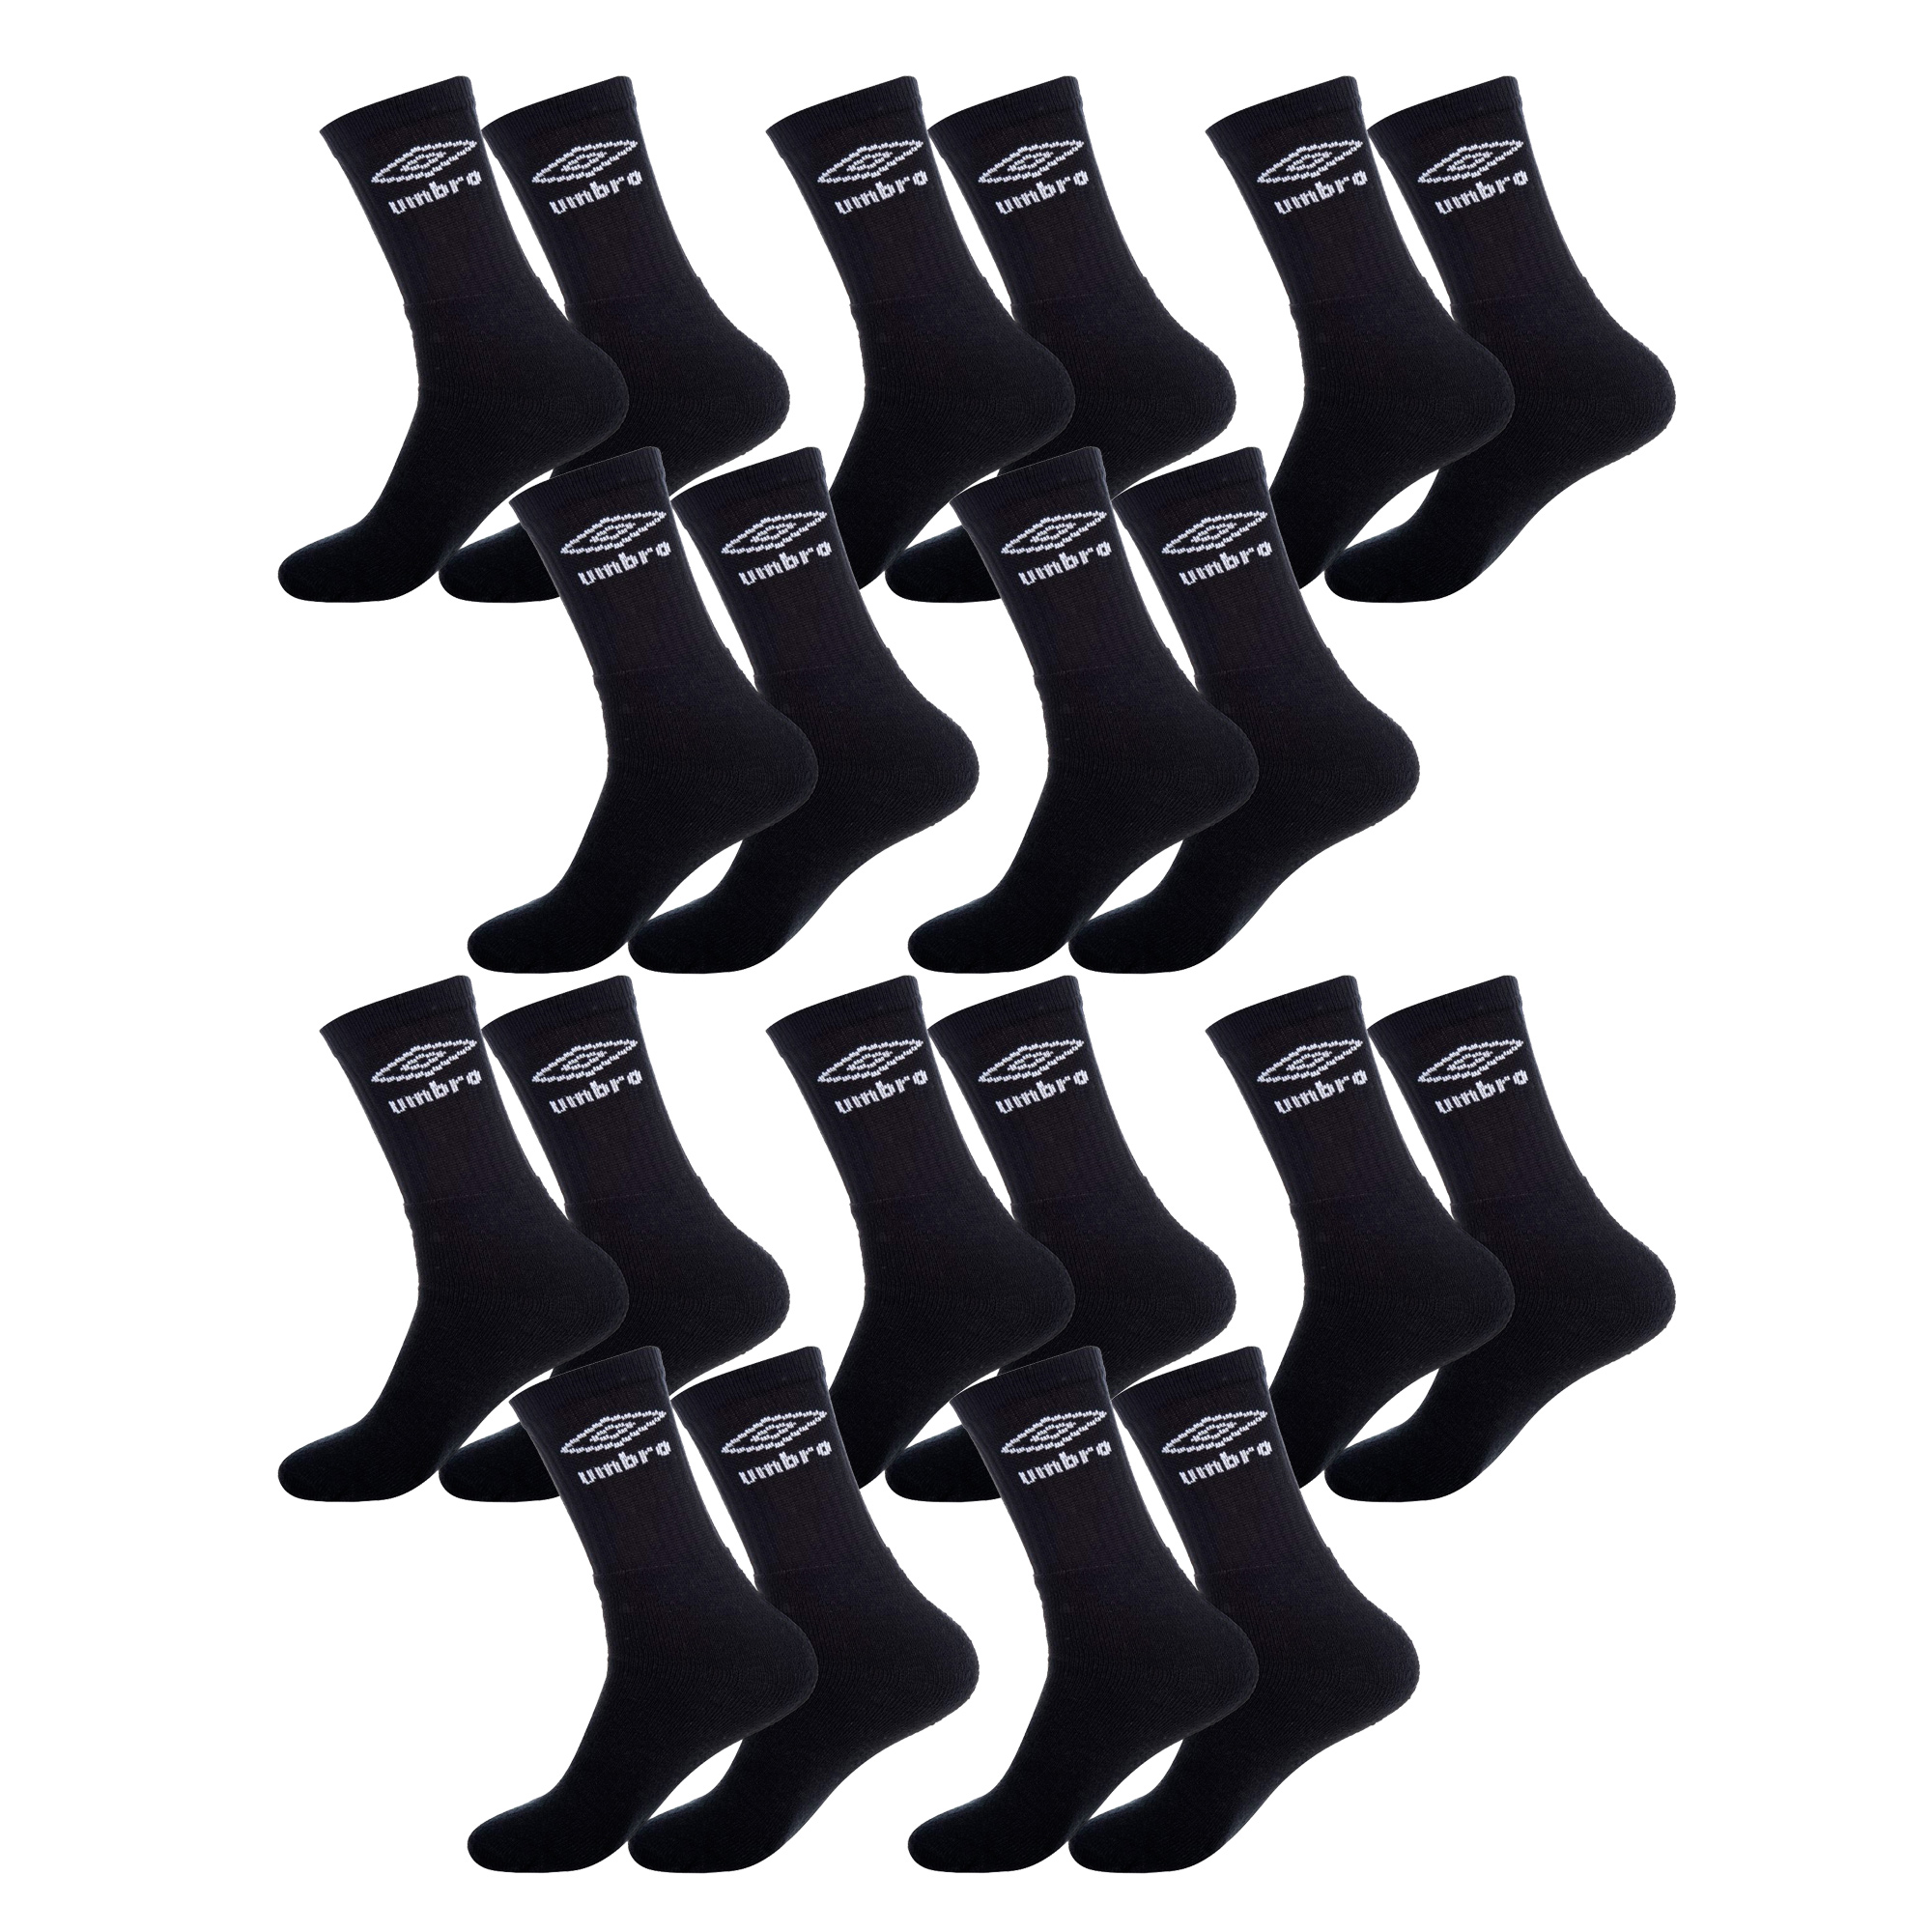 UMBRO Pack 10 pairs of long socks made of cotton, polyester and elastane in black color-1